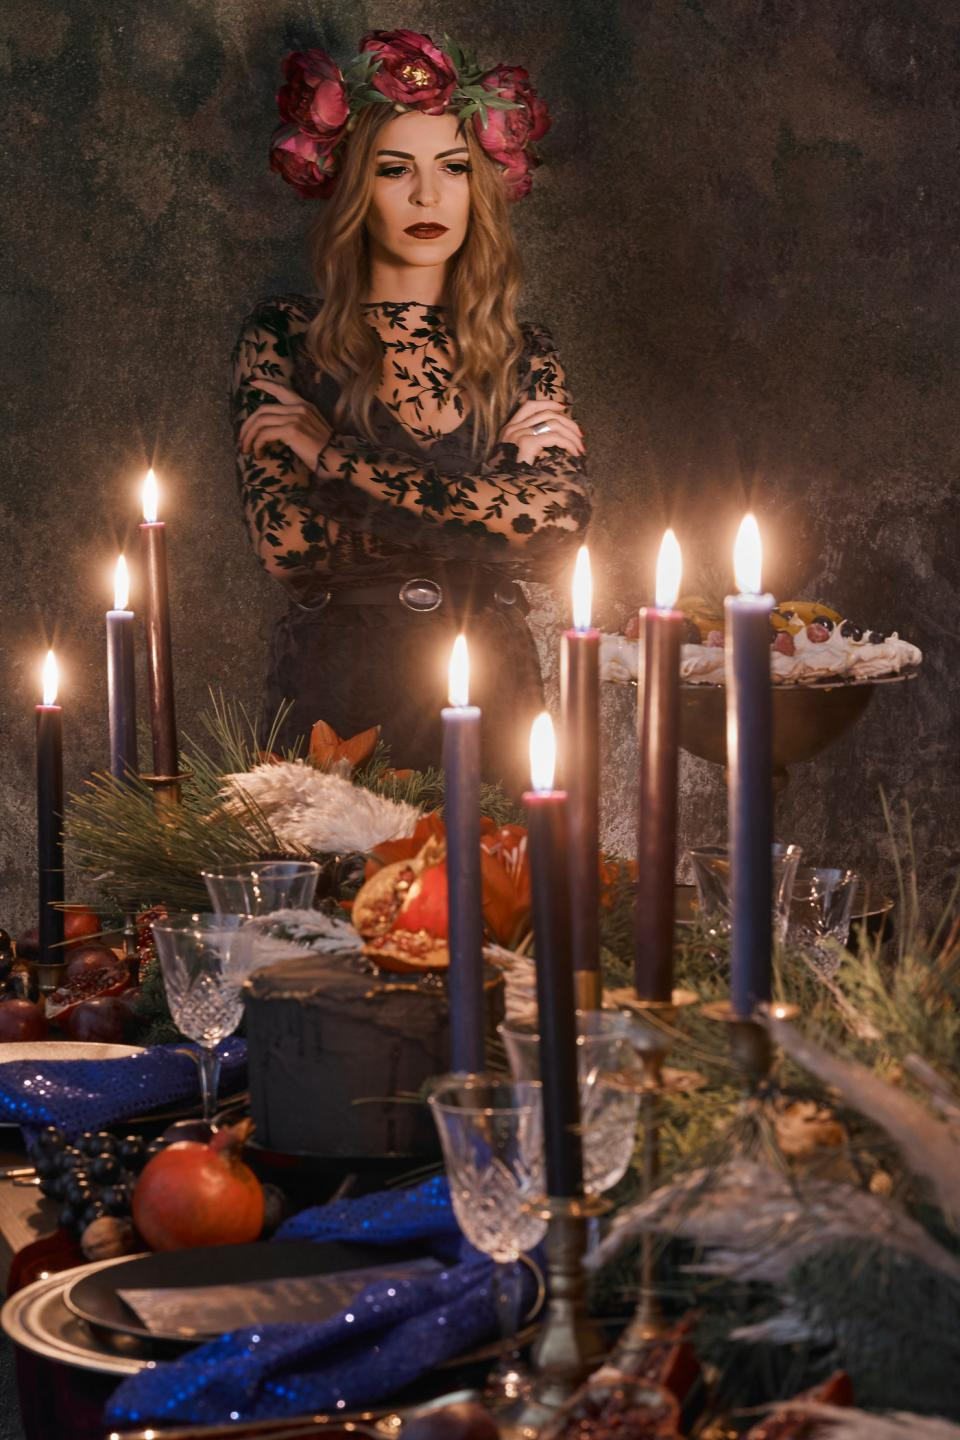 Bohemian Christmas Celebration in Moody tones